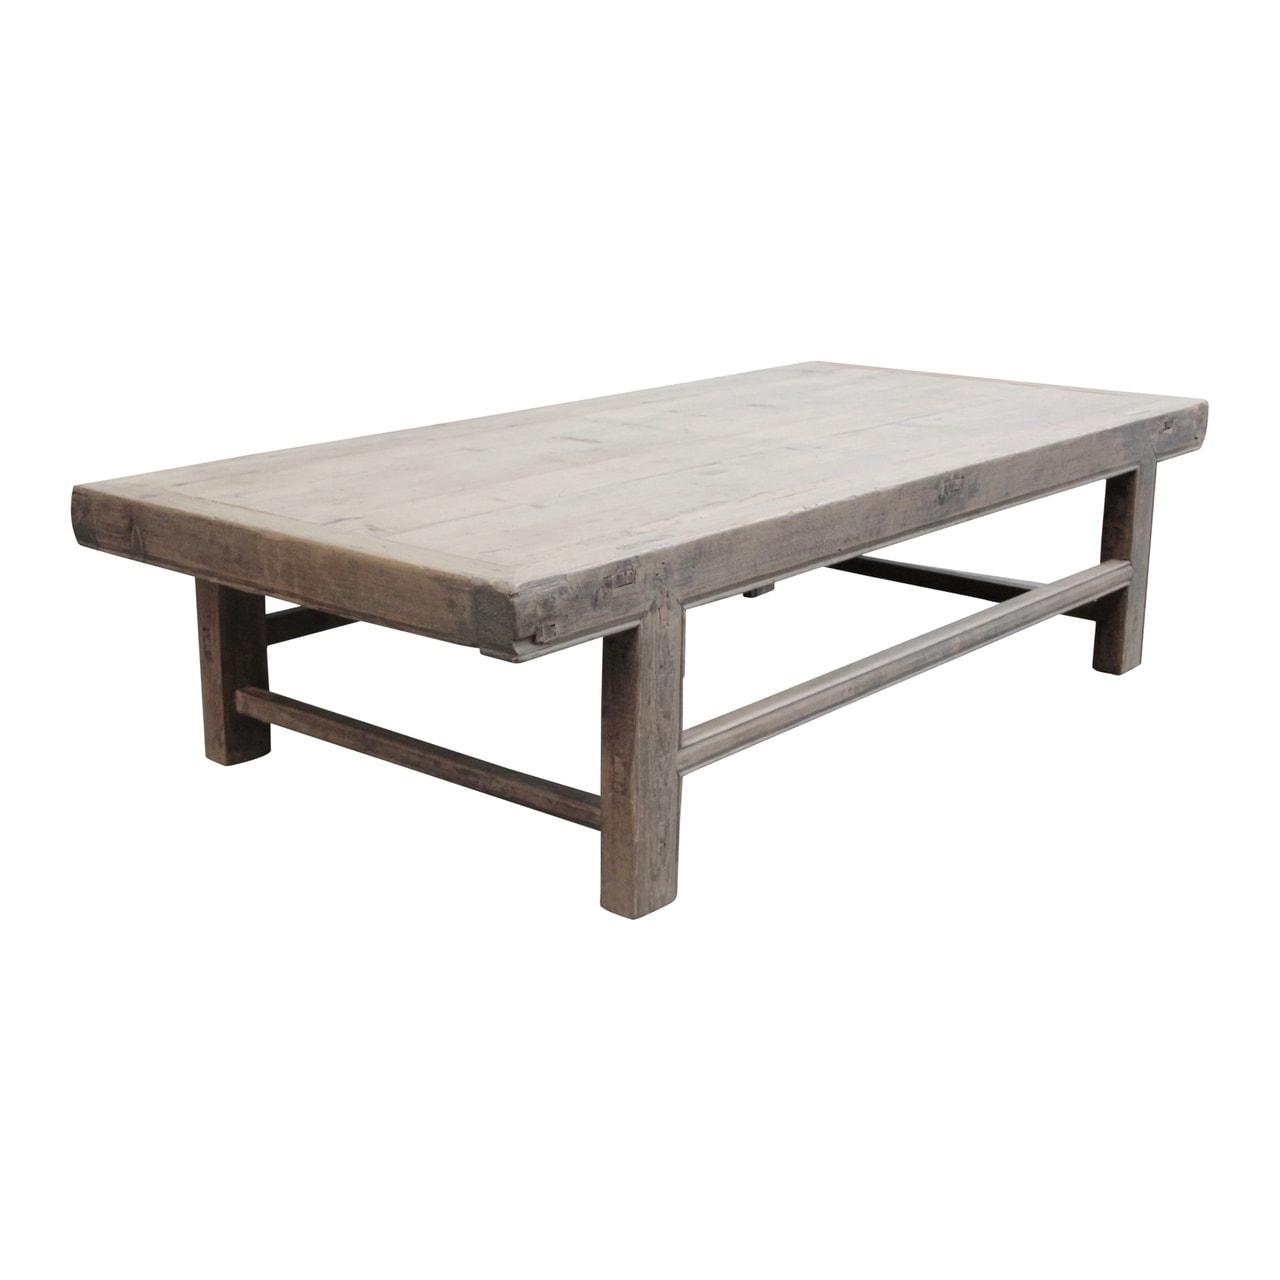 large vintage coffee table w regular top about 6 8 feet long weathered natural wood finish size and color vary